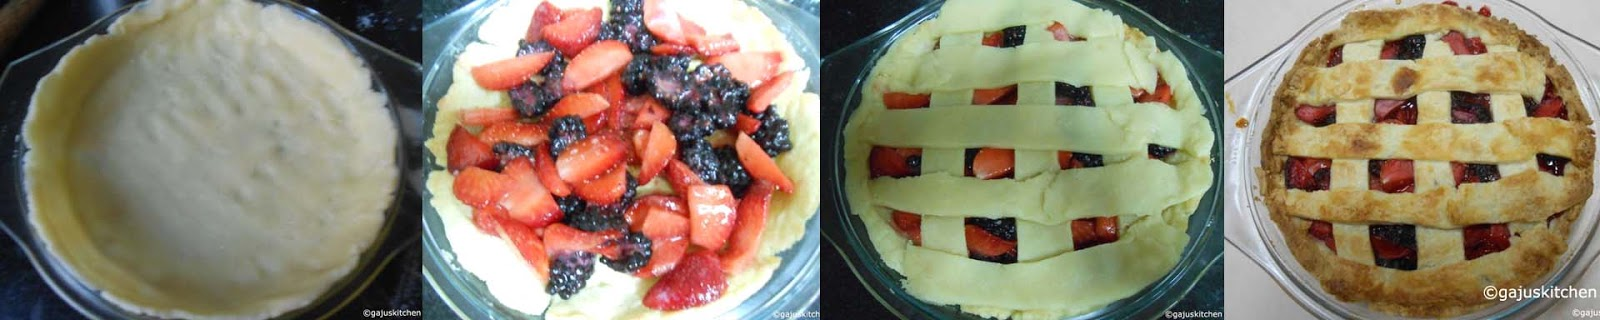 Preparing the crust and Pie before and after baking